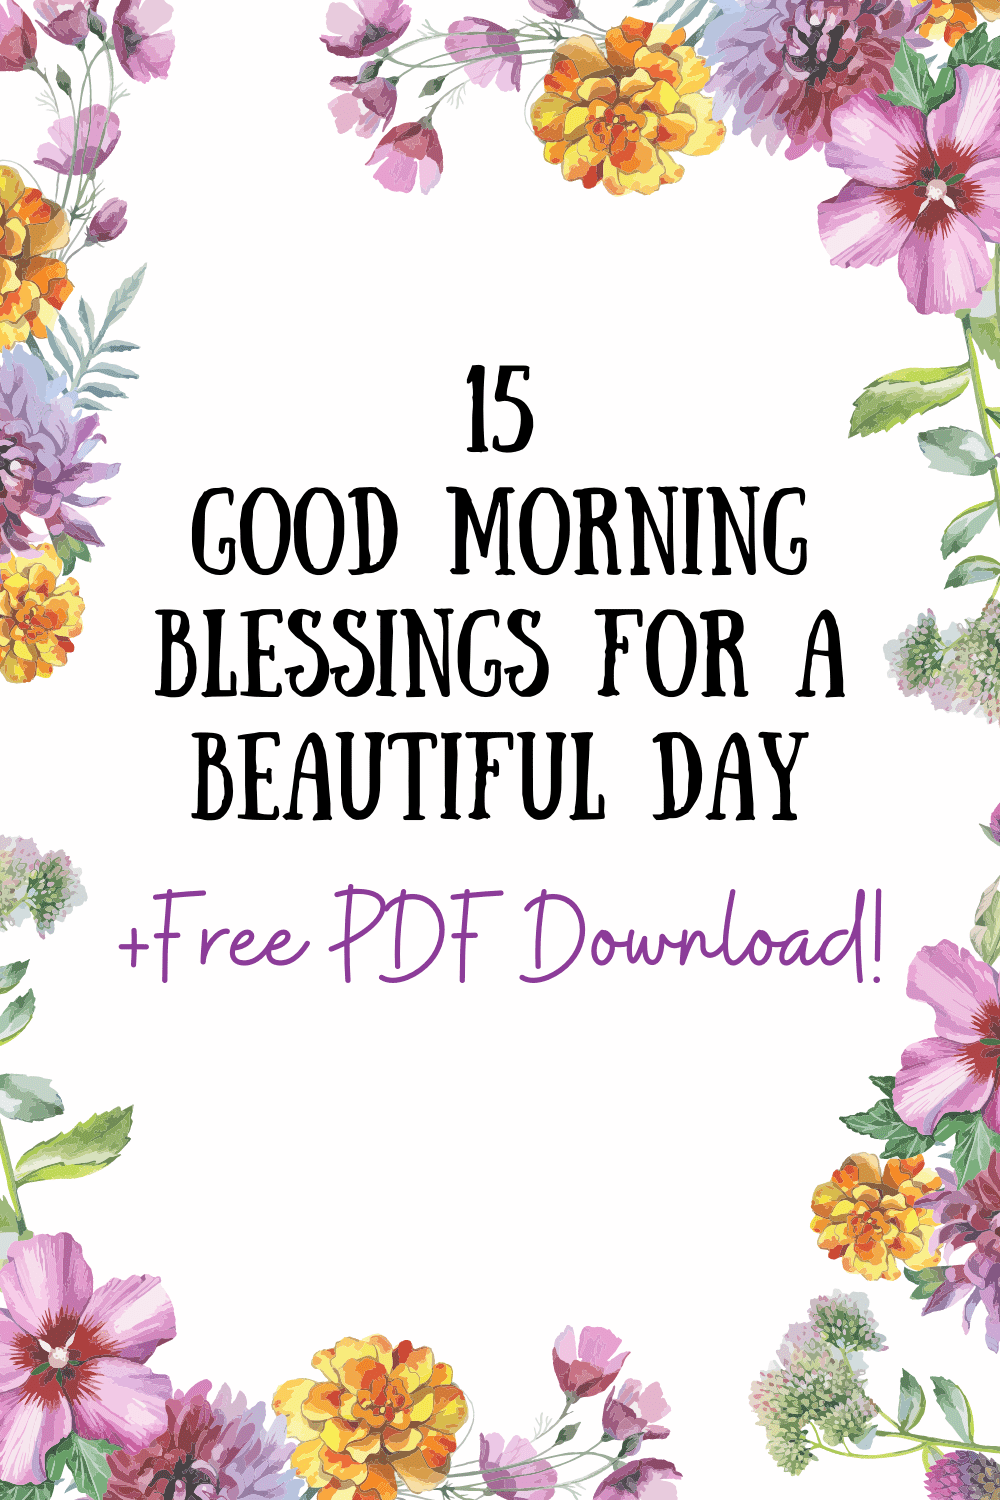 15 Good Morning Blessings & Well Wishes For a Beautiful Day {Free PDF Downloads!}